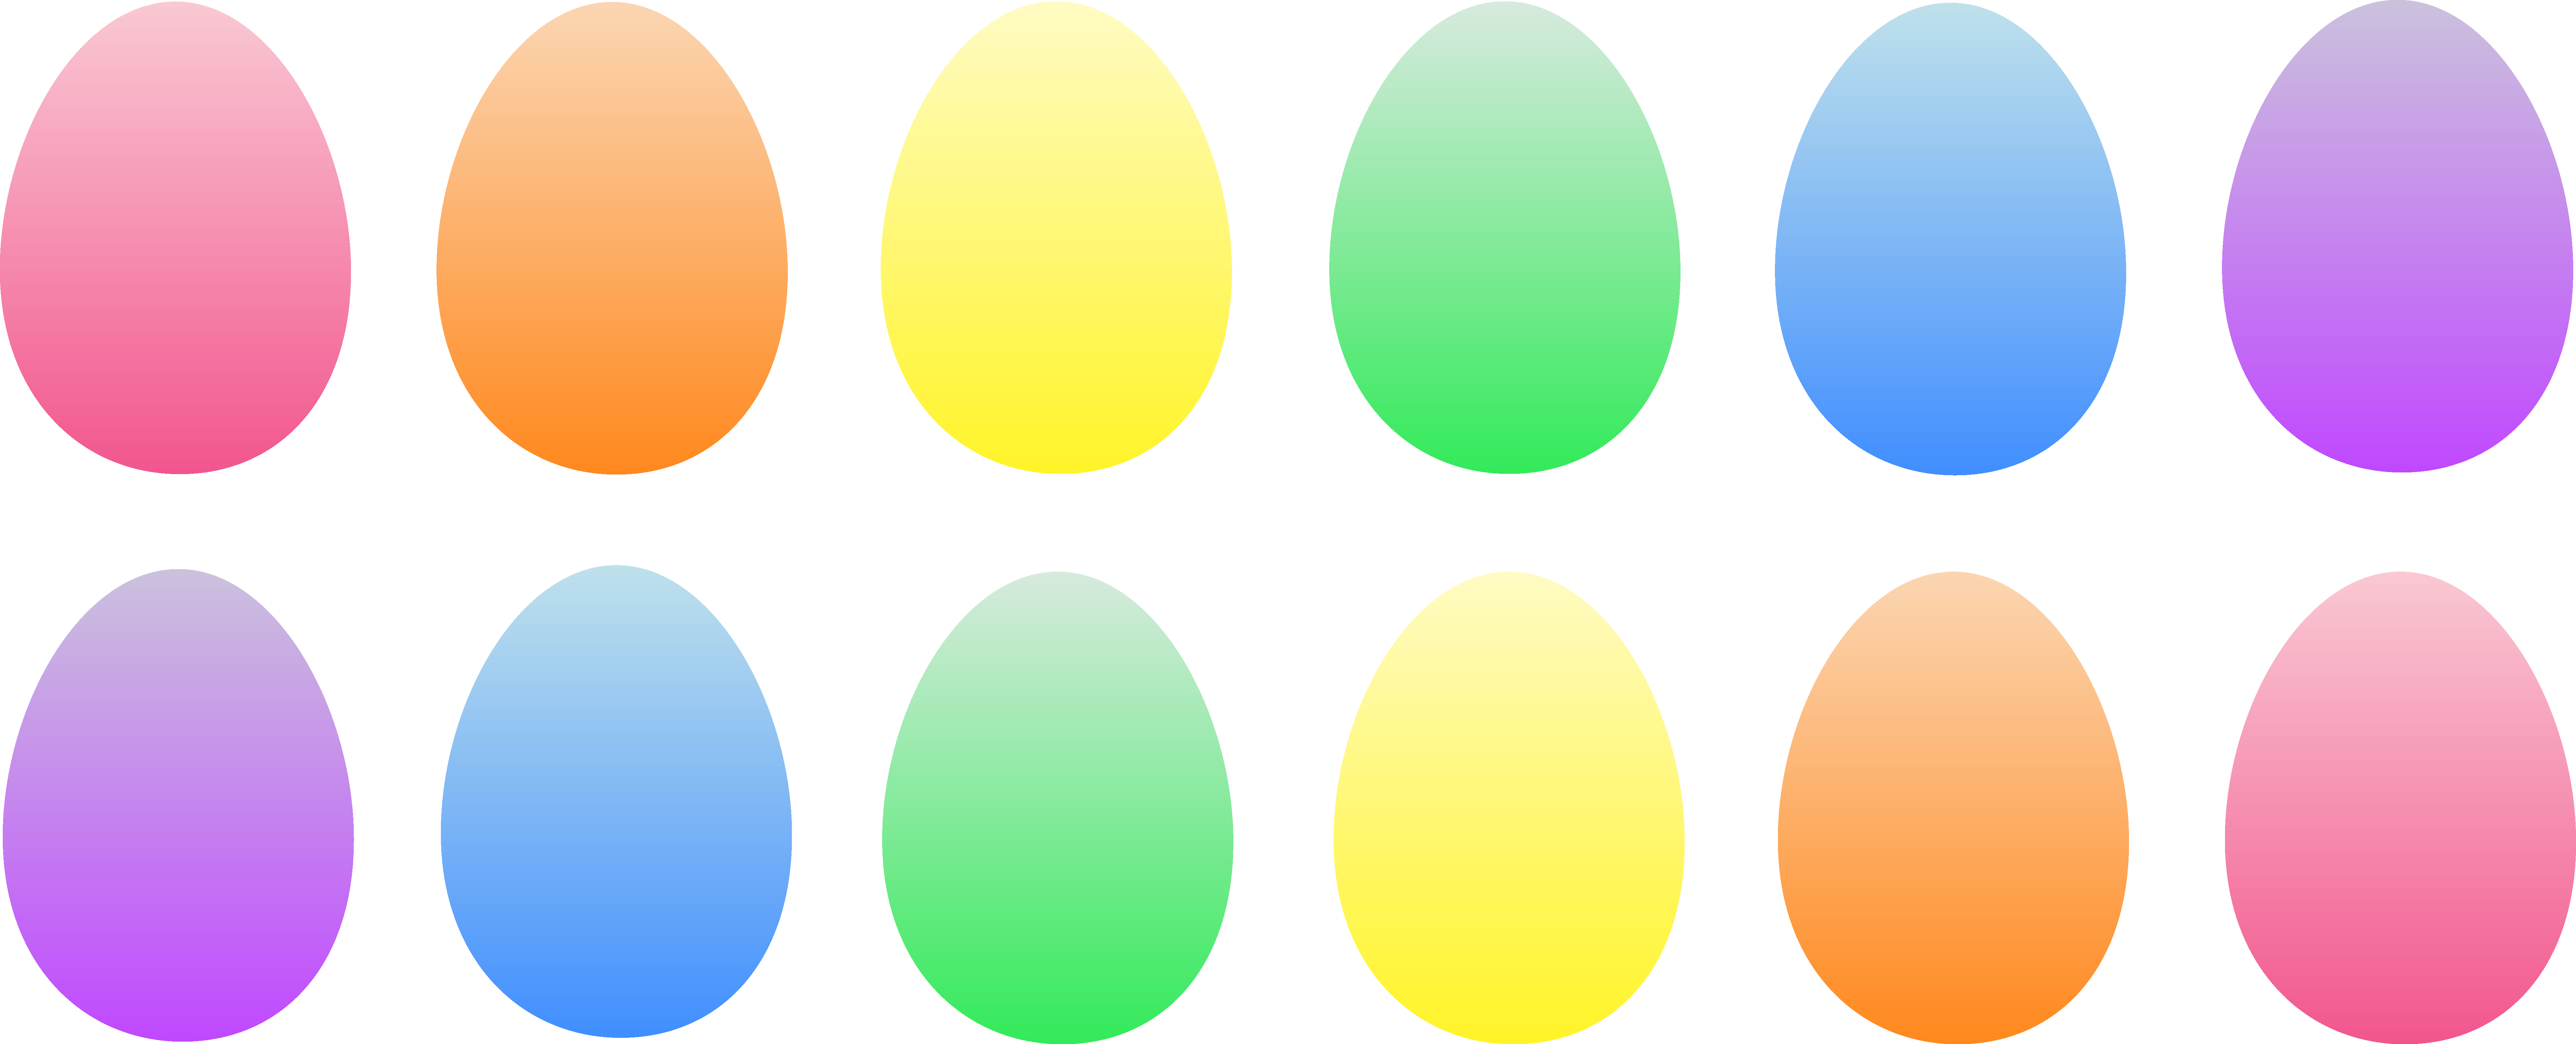 Free clipart colors picture freeuse download Easter colors background clipart images gallery for free download ... picture freeuse download